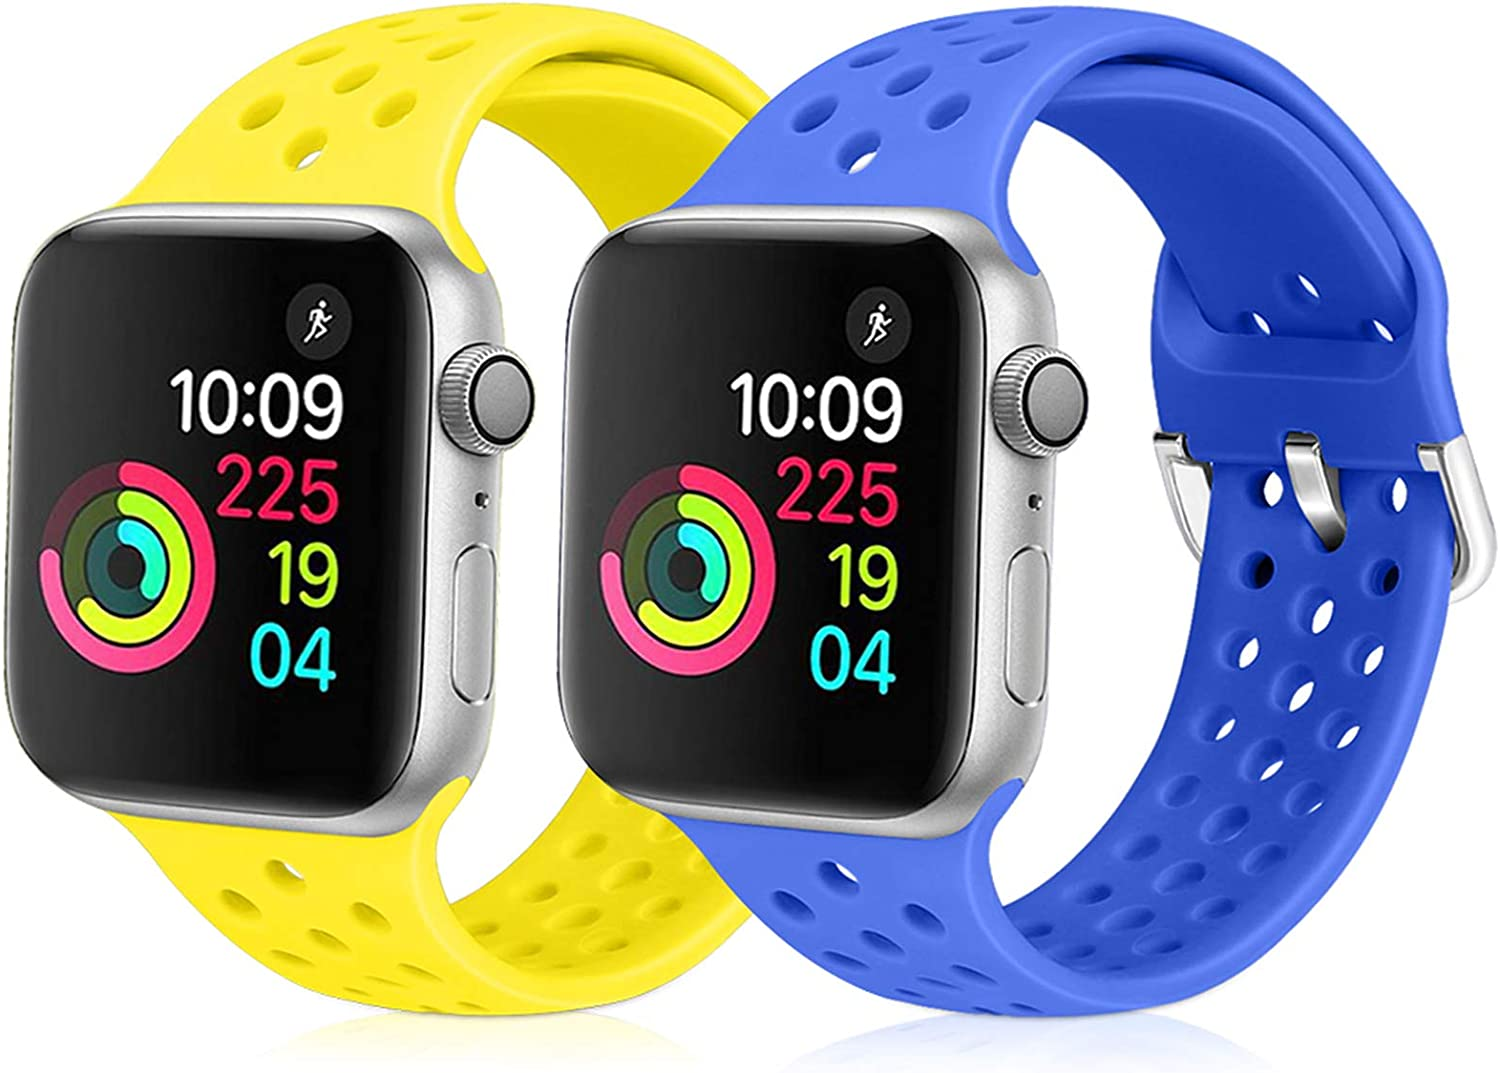 XFYELE Compatible with Apple Watch Band 42mm 44mm, Soft Silicone Replacement Strap Compatible for iWatch Series 6, 5, 4, 3, 2, 1 for Women and Men (Sapphire Blue & Shiny Yellow, 42mm/44mm)